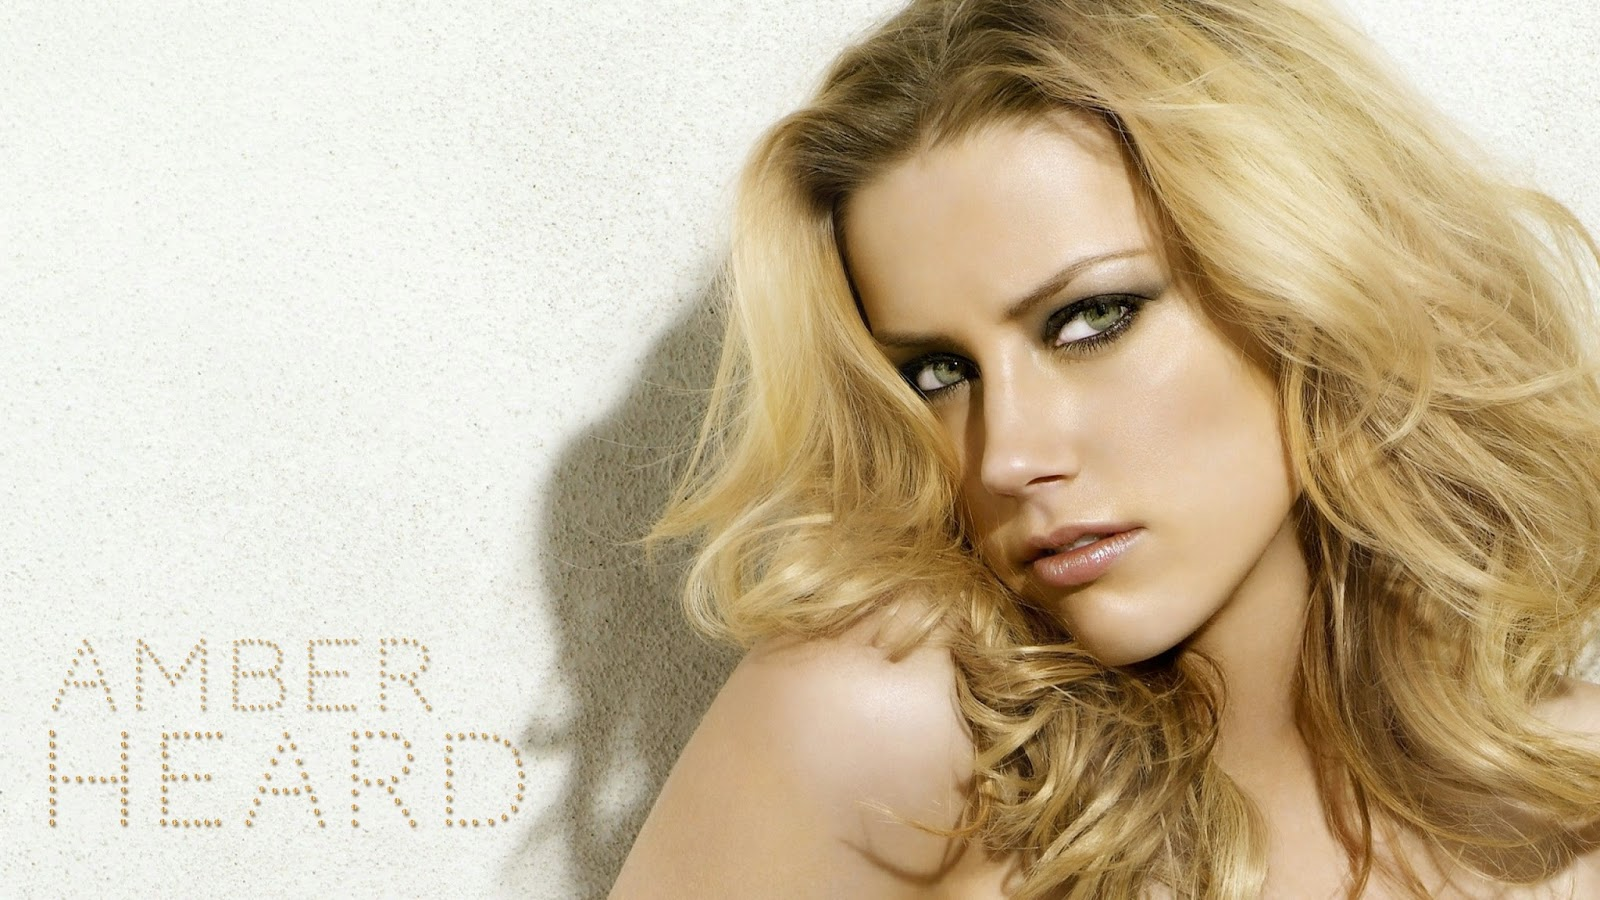 Amber Heard Hd: Global Pictures Gallery: Amber Laura Heard Full HD Wallpapers